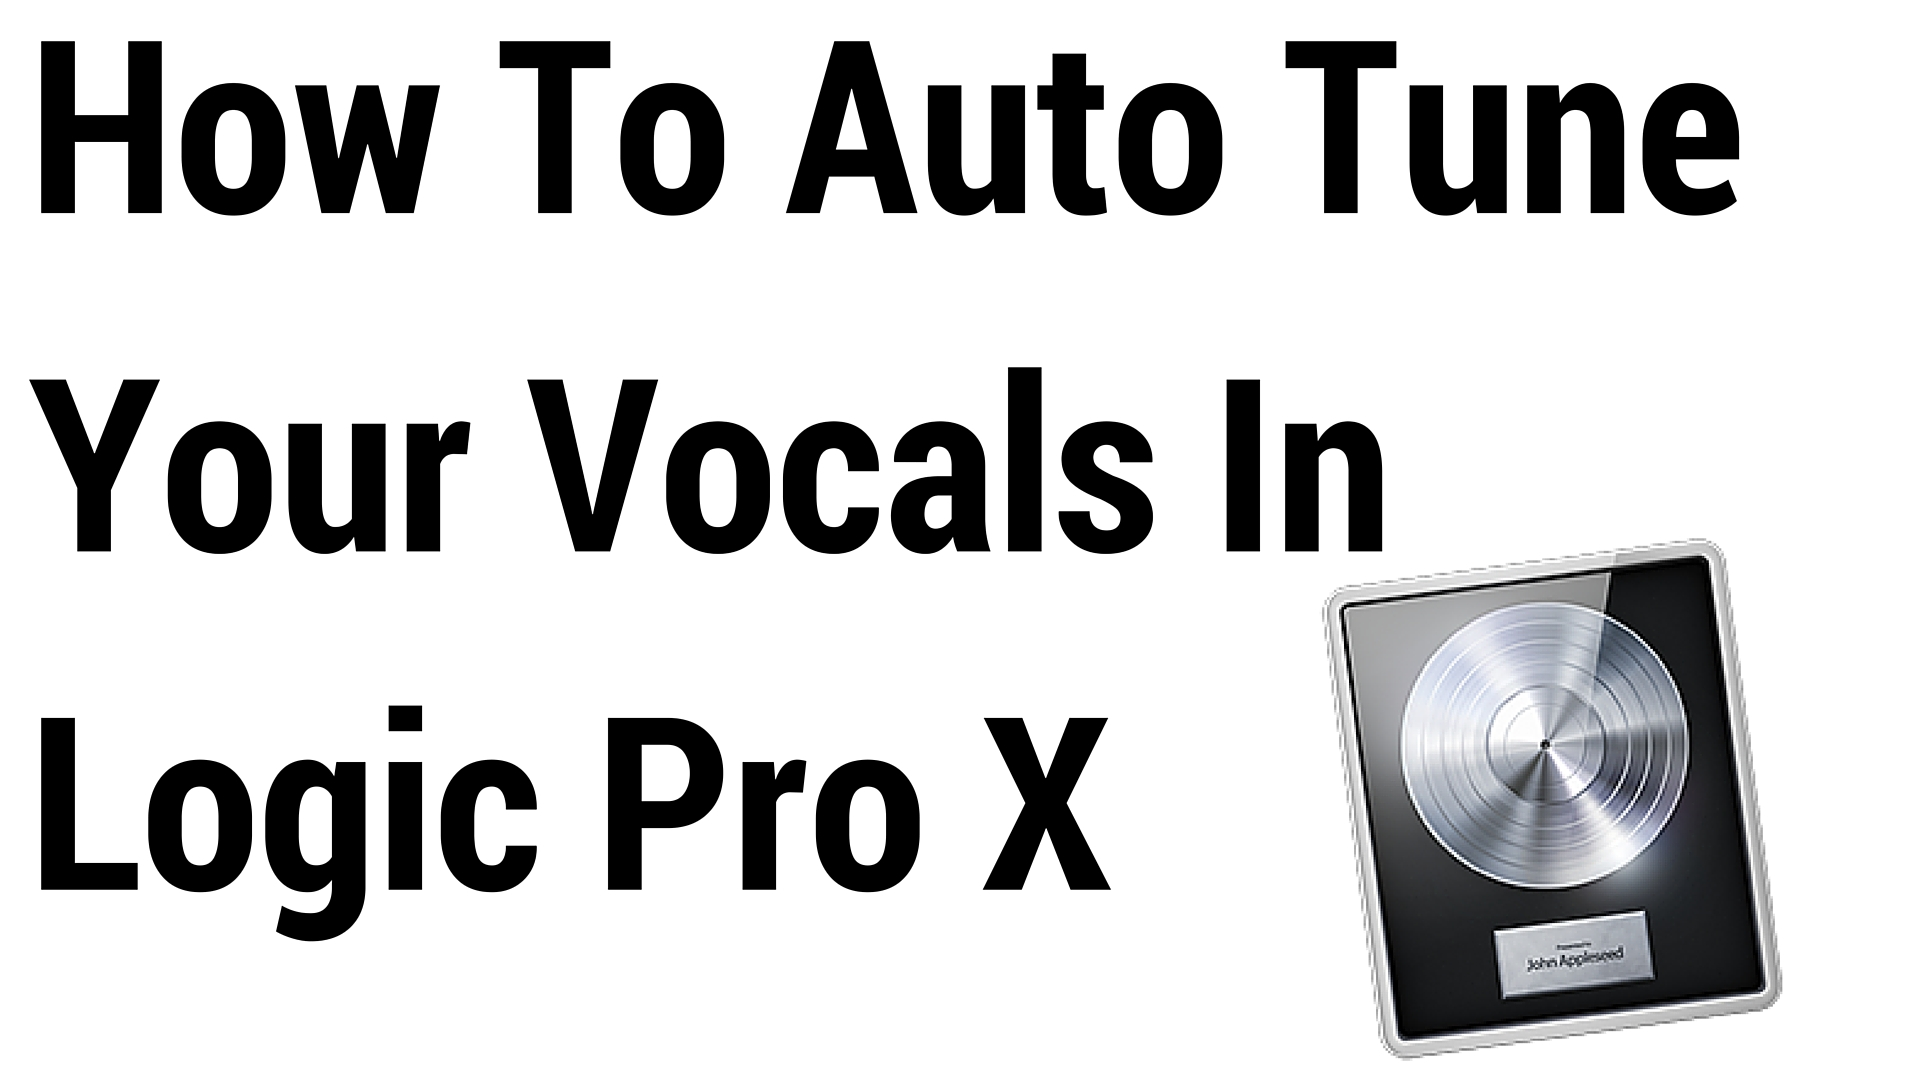 How To Auto Tune Your Vocals In Logic Pro X (For Free) | Jay